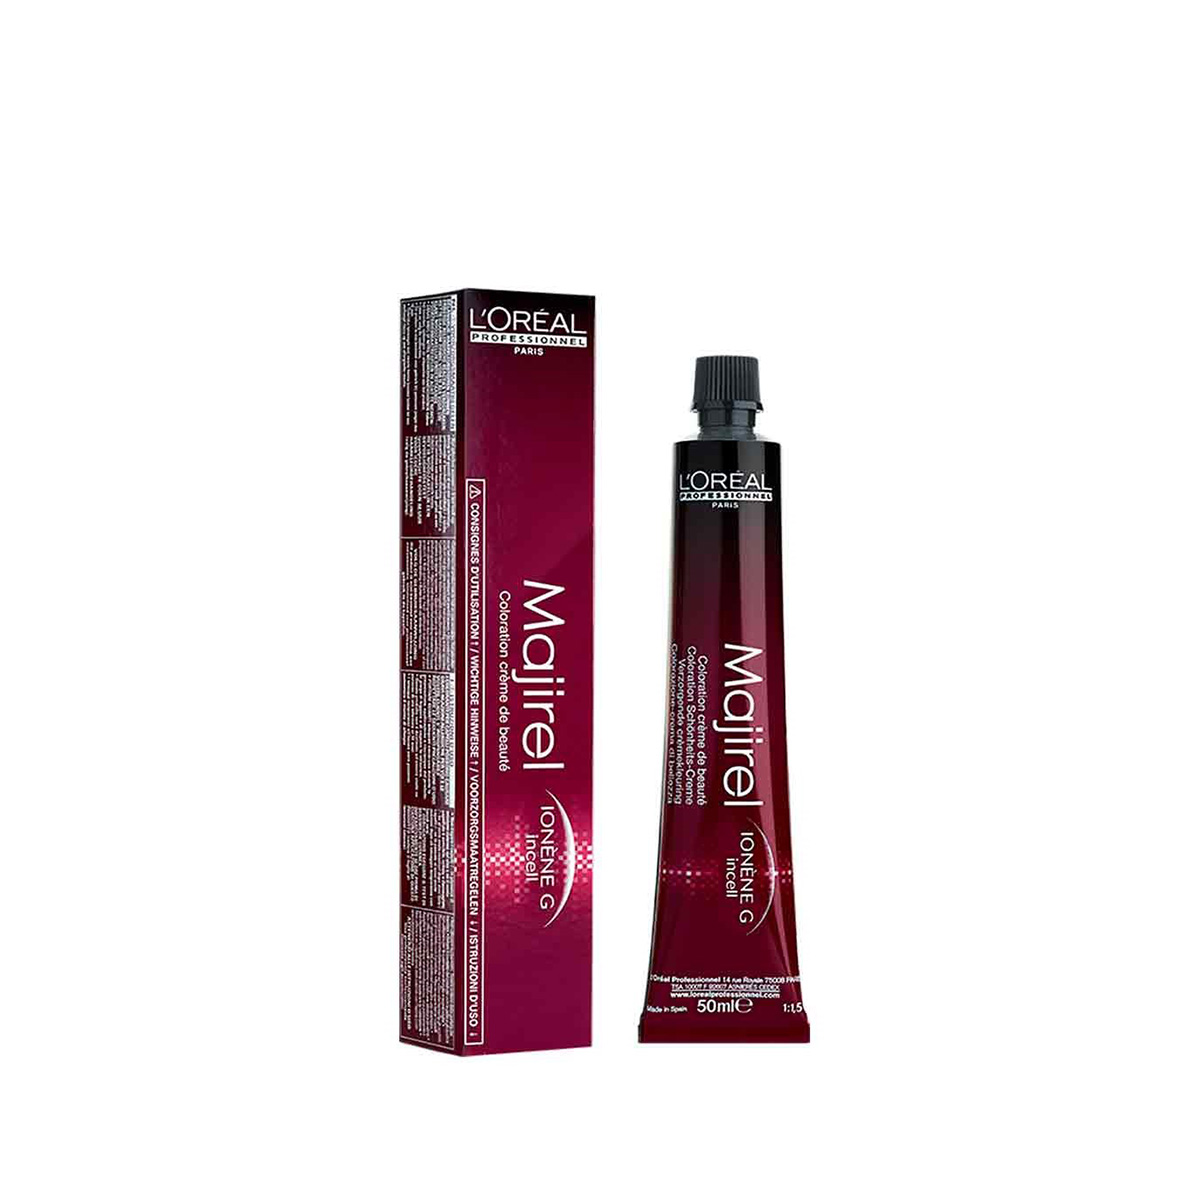 Majicontrast Absolute 50 Ml Rame